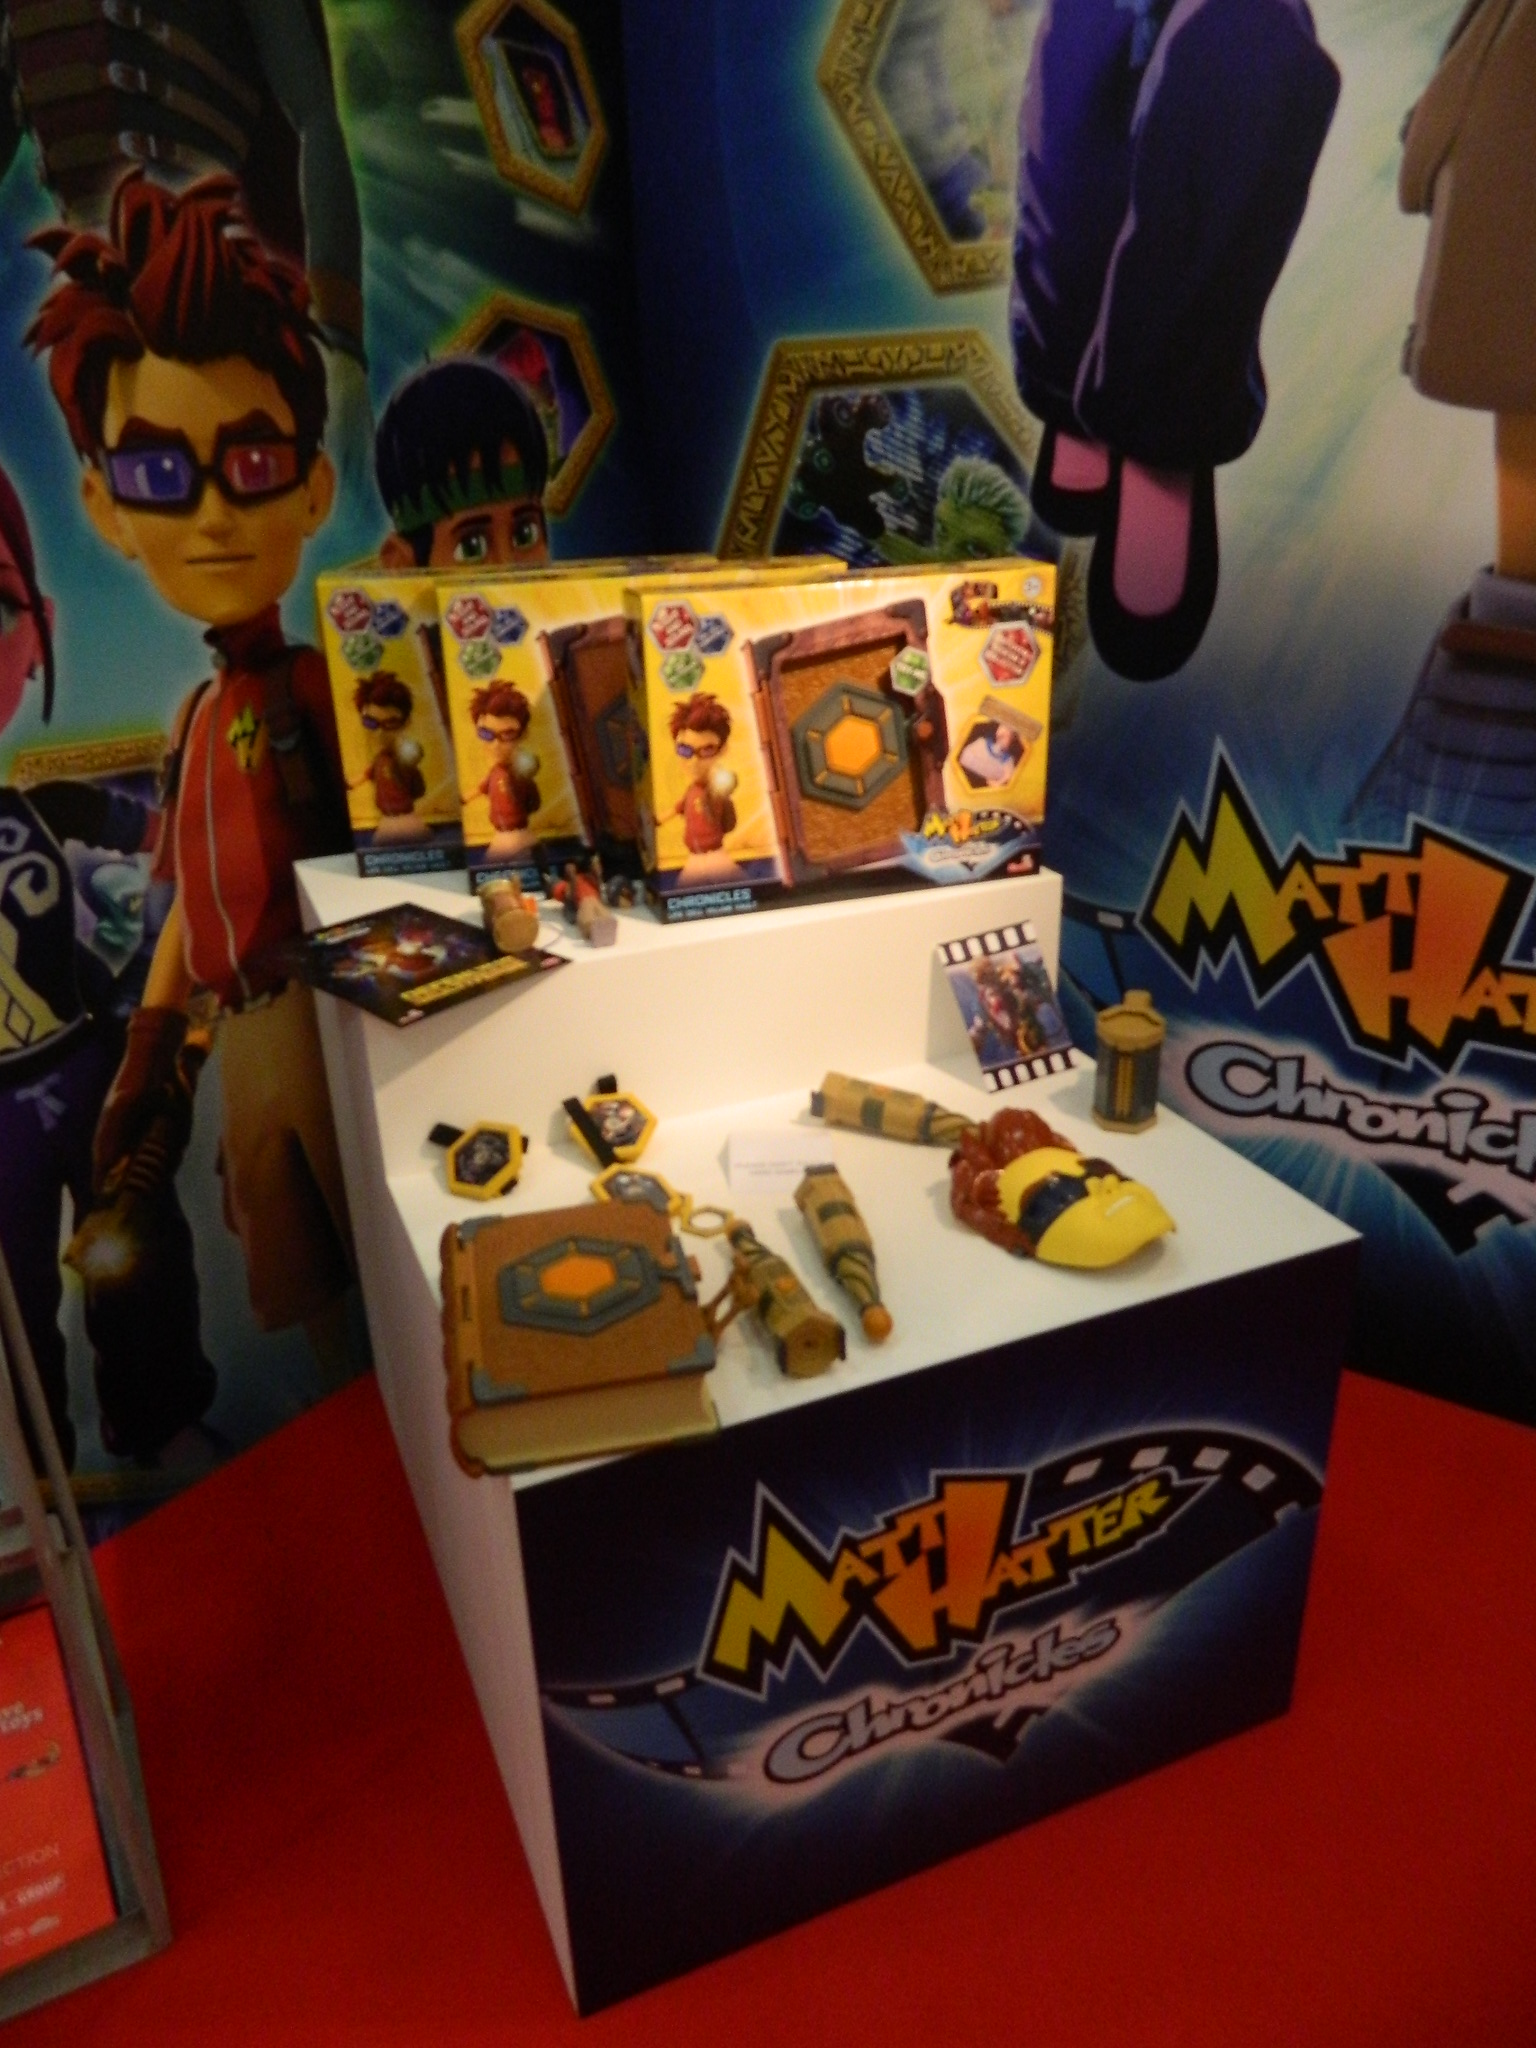 Nerf Toy Toy Fair 2014: New Matt Hatter Toys!!!